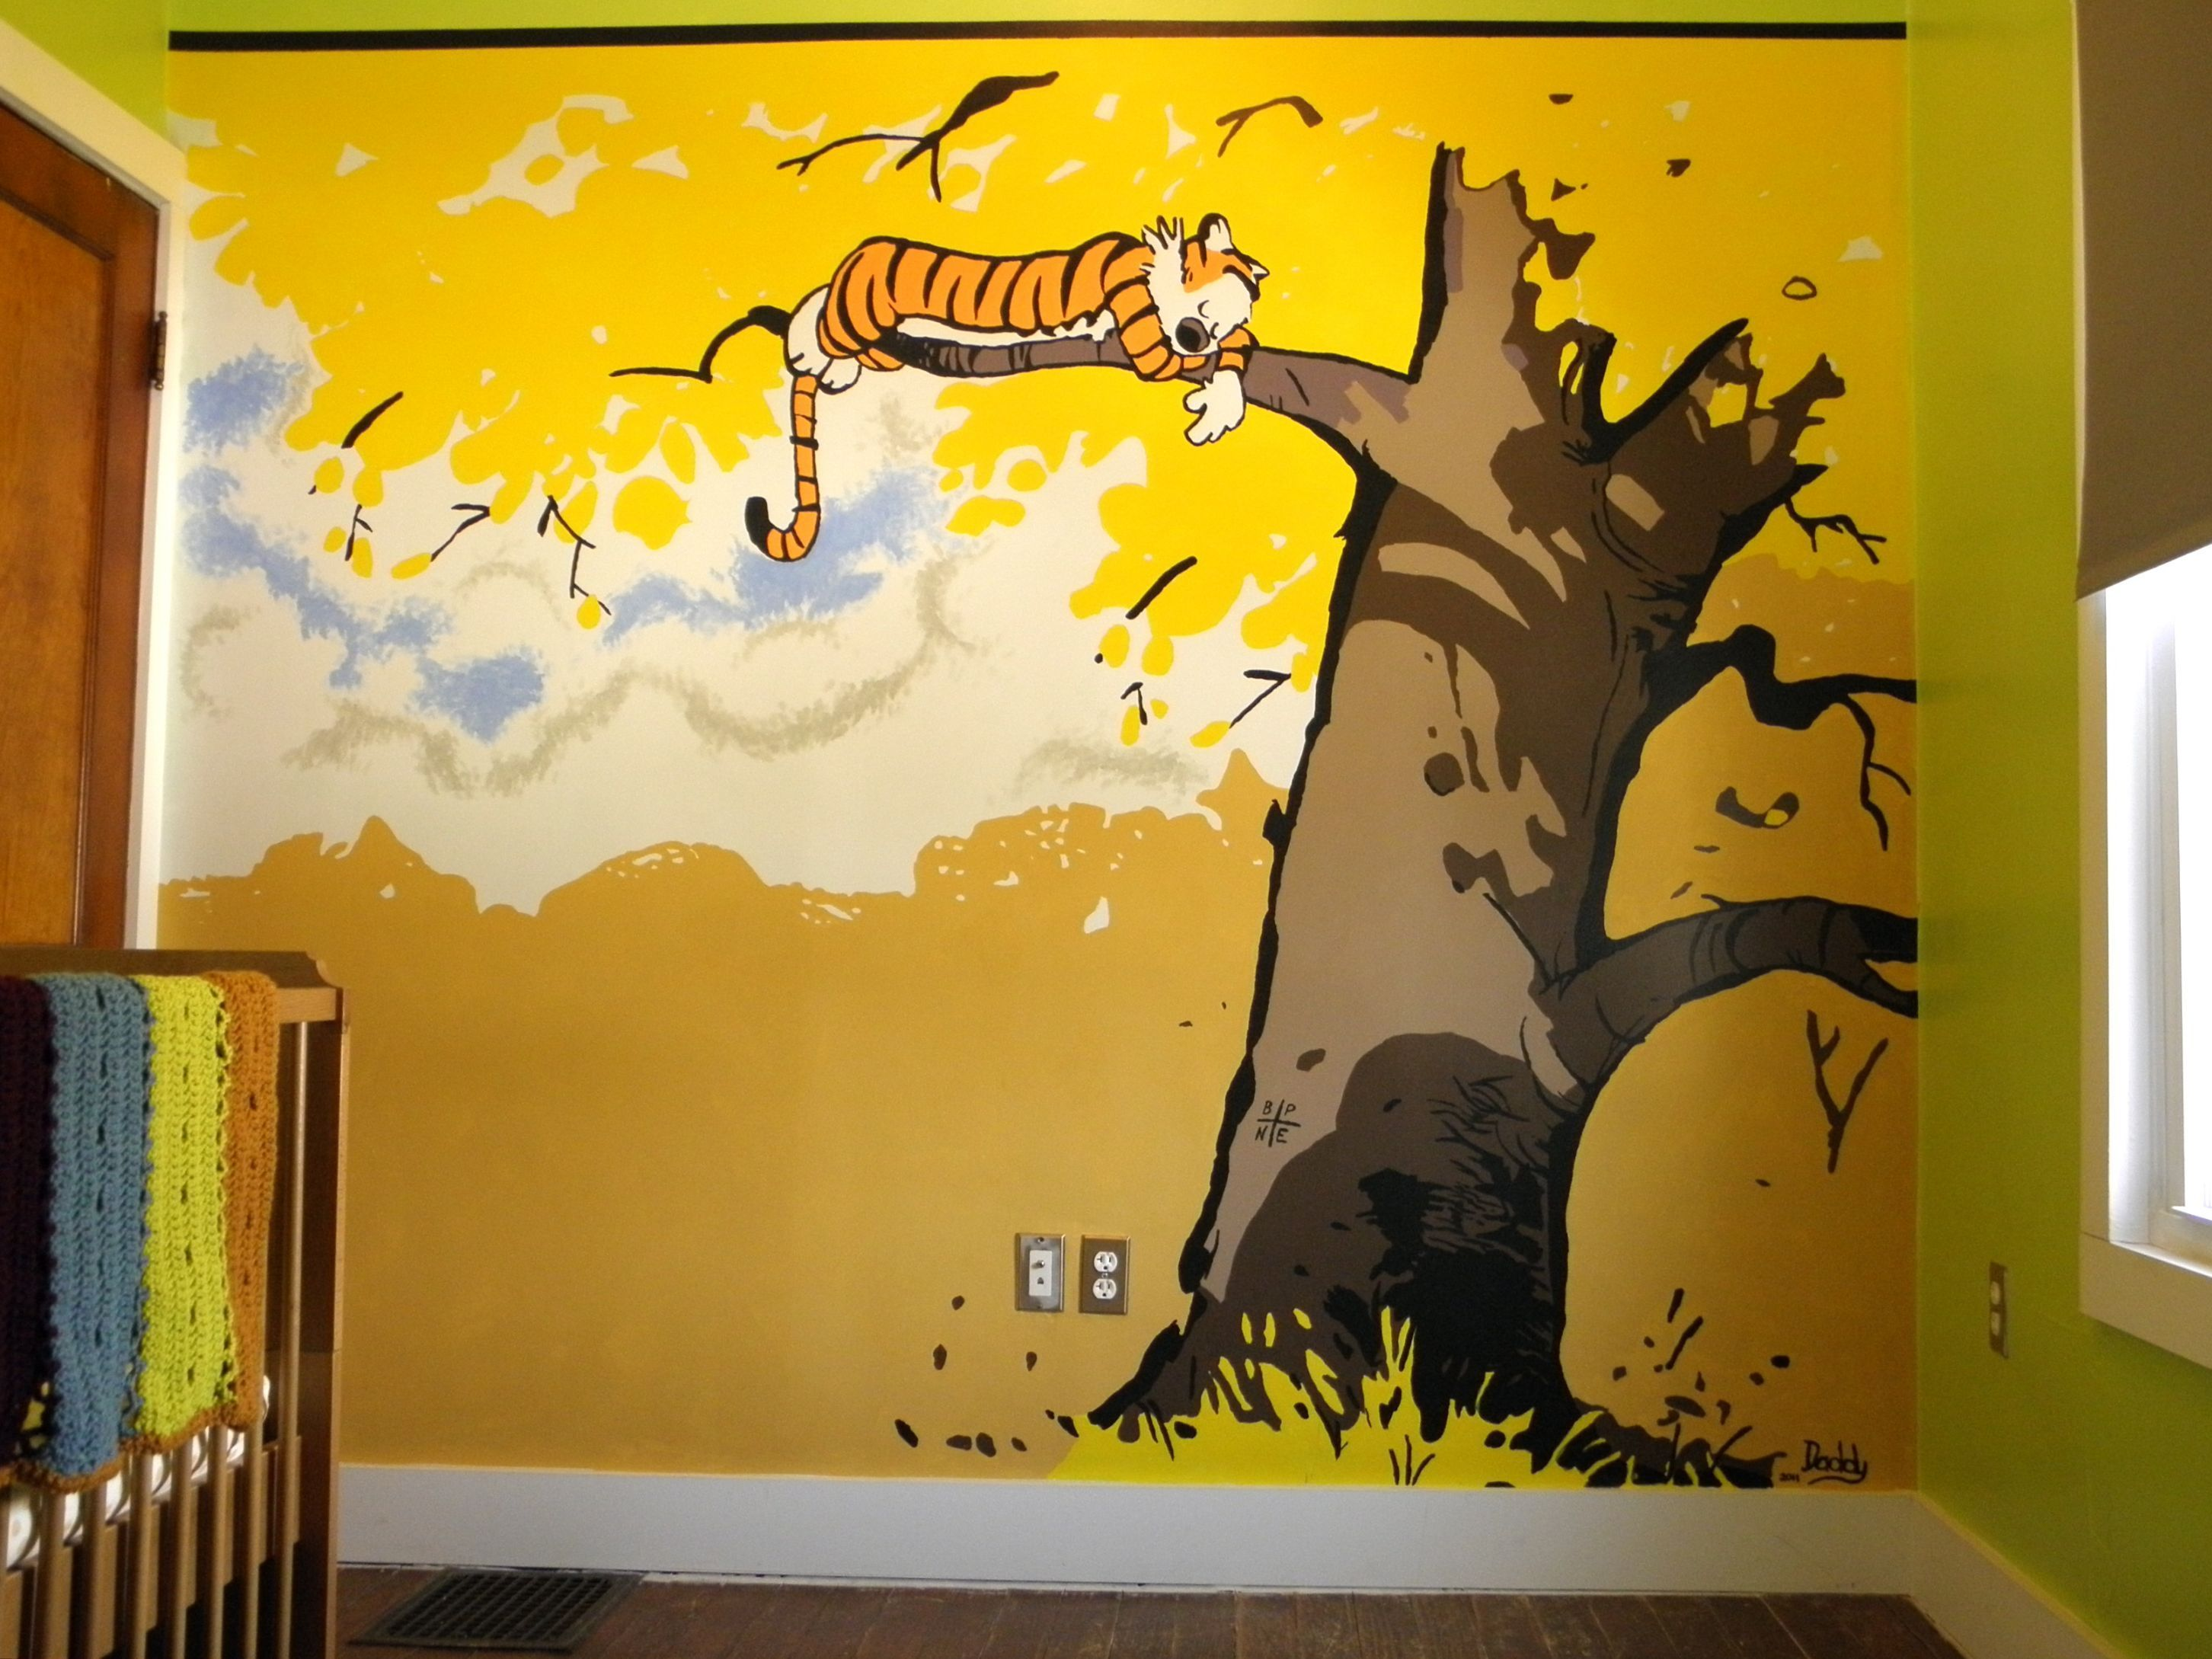 3 Calvin and Hobbes...and what a great idea for some wall art ...